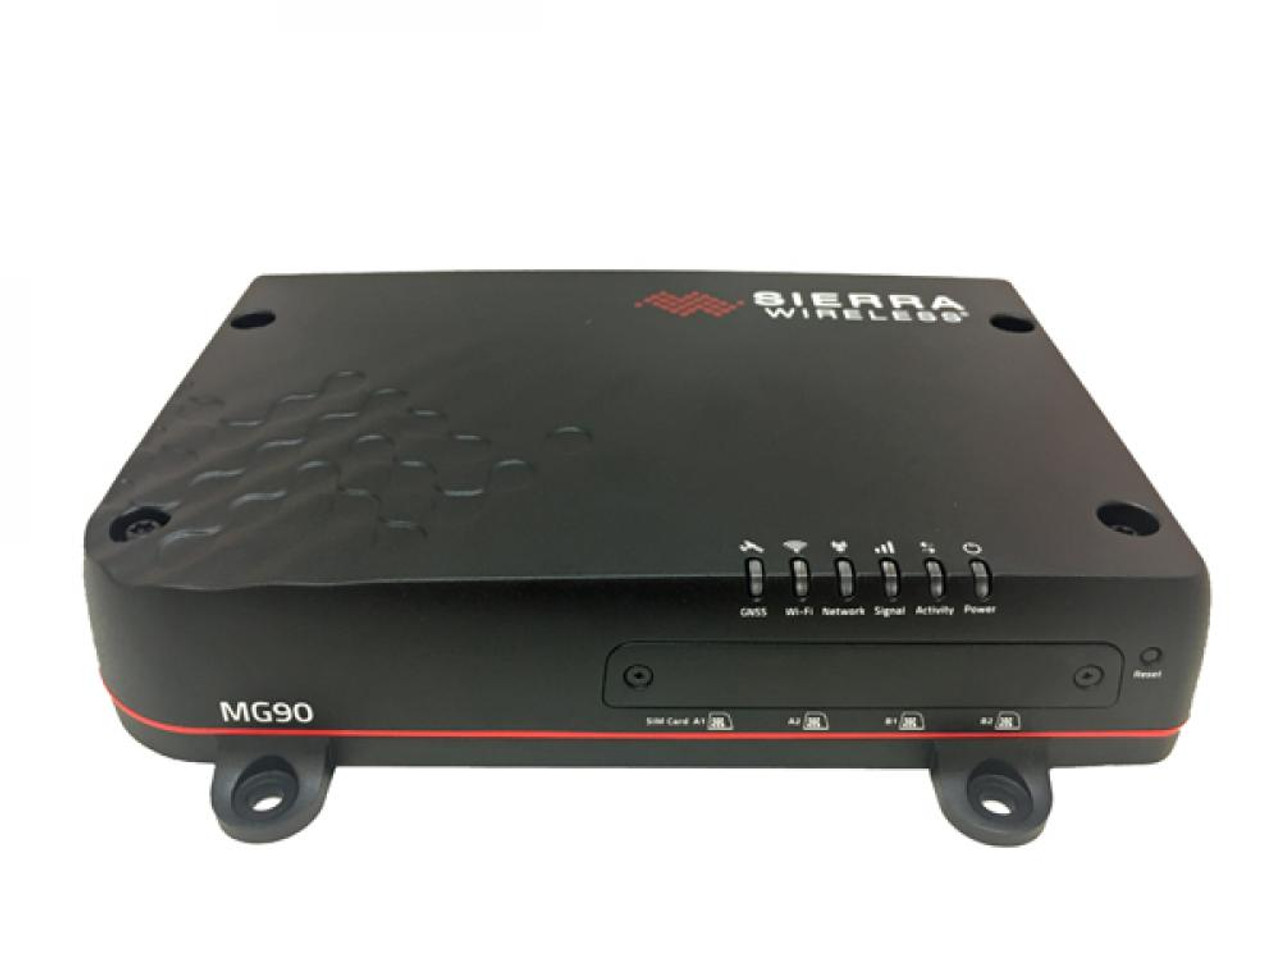 Sierra Wireless AirLink MG90 High Performance Multi - Network Vehicle Router - Front / Top